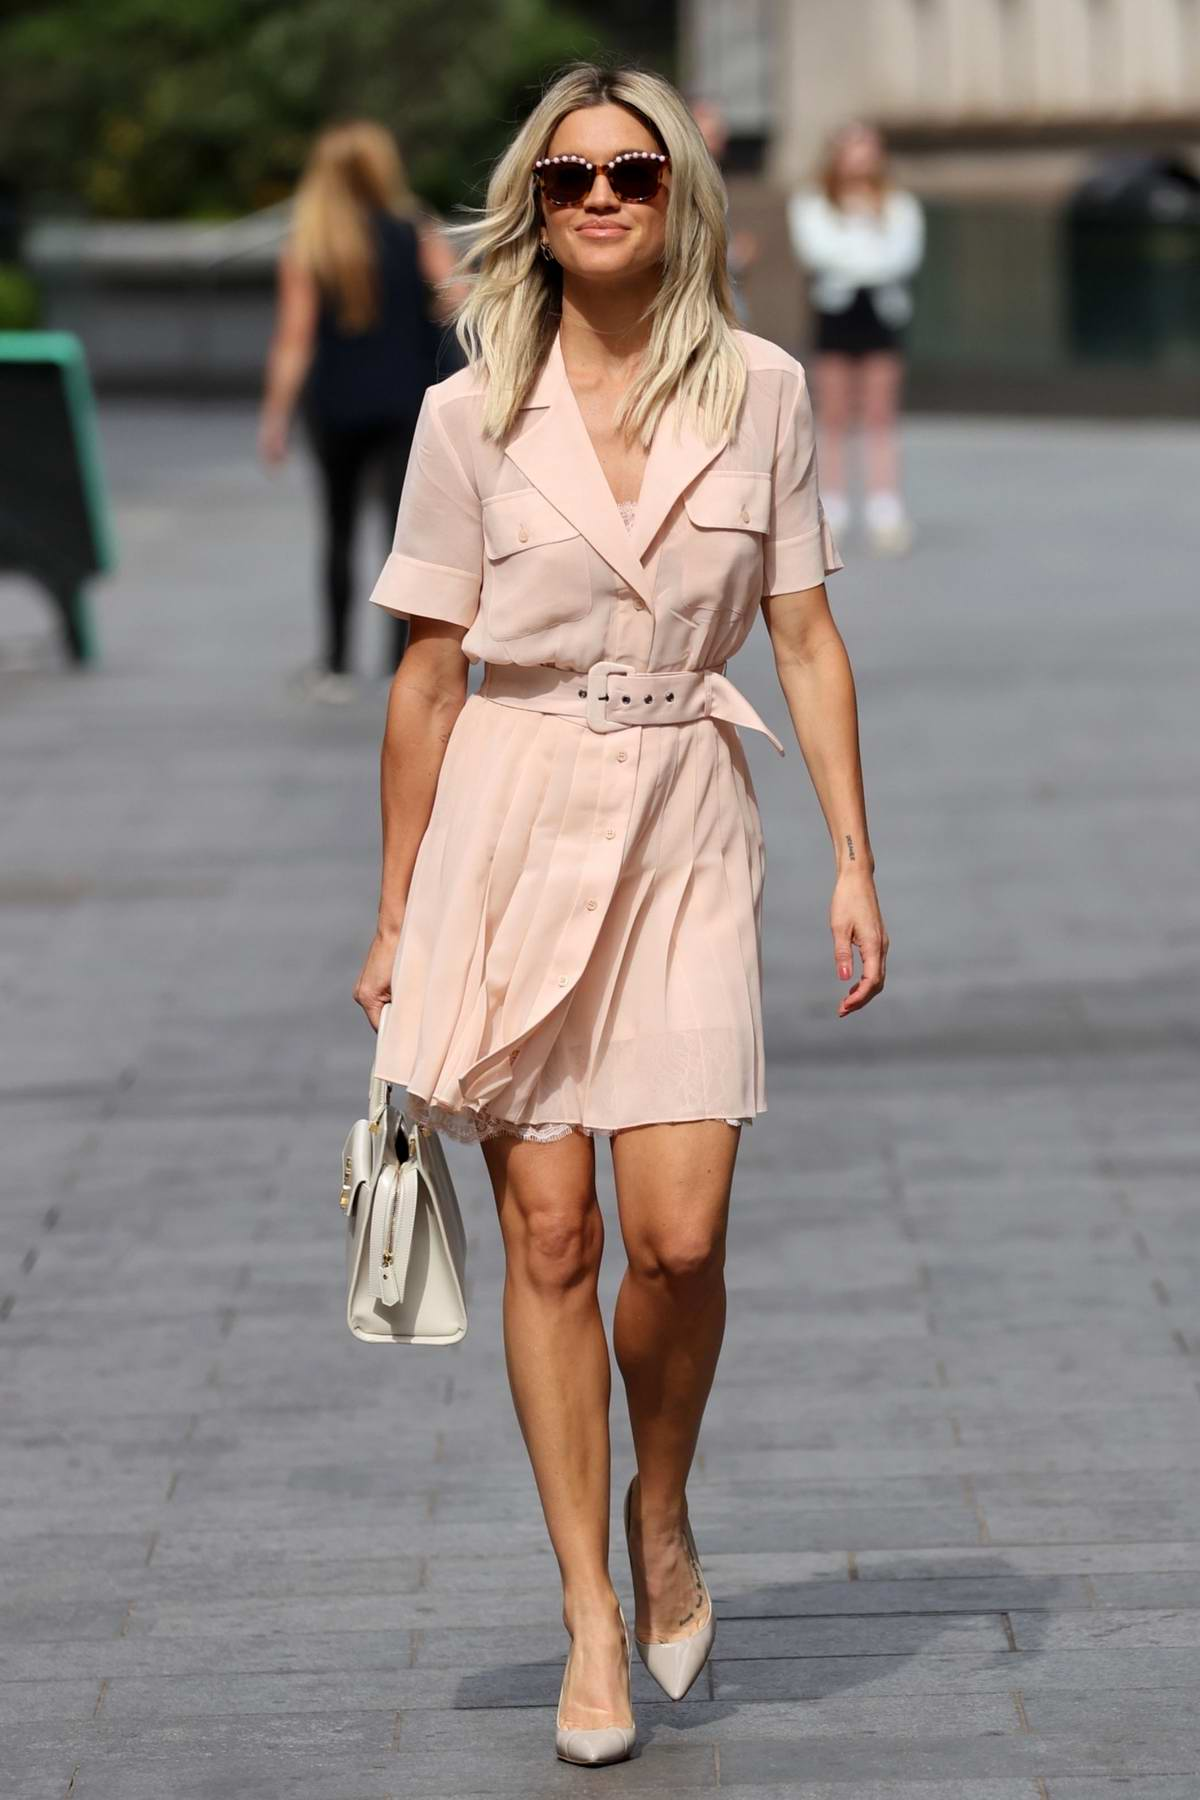 Ashley Roberts looks pretty in a pink mini dress as she exits the Heart Radio in London, UK